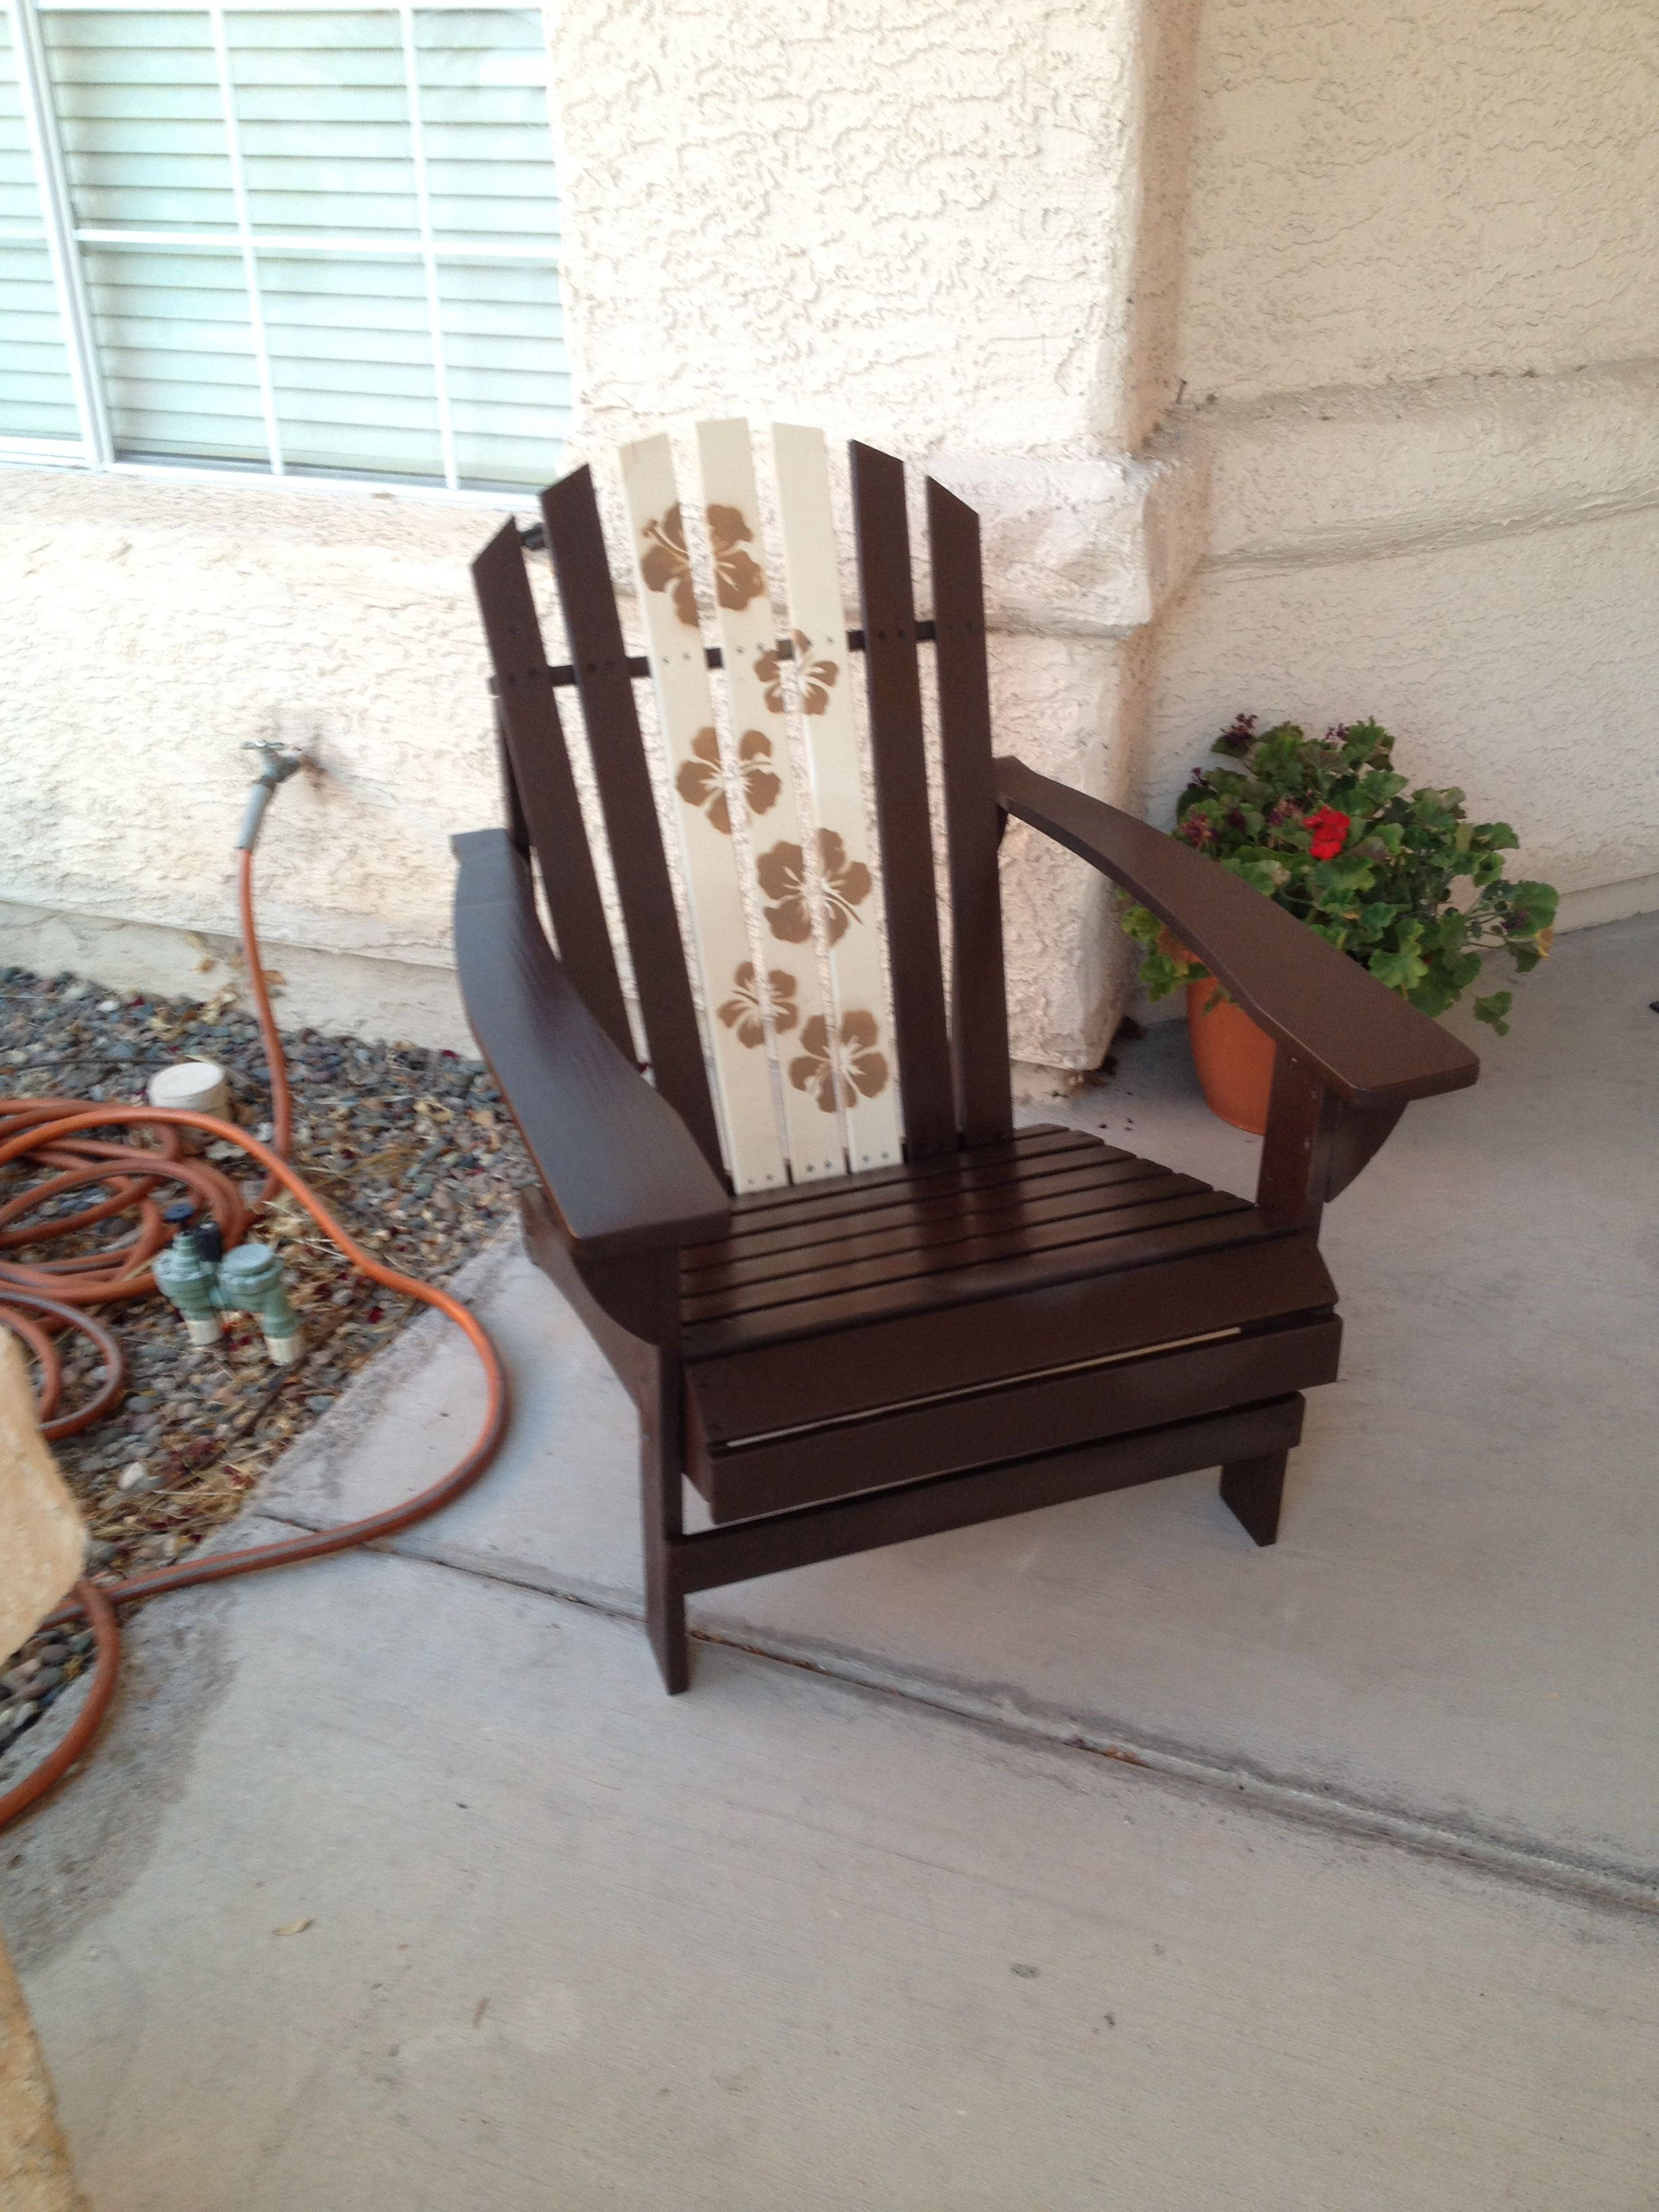 home depot outdoor chairs on pin by sheryl wooldridge on home crafts diy white leather dining chairs shabby chic table and chairs summer chairs pinterest